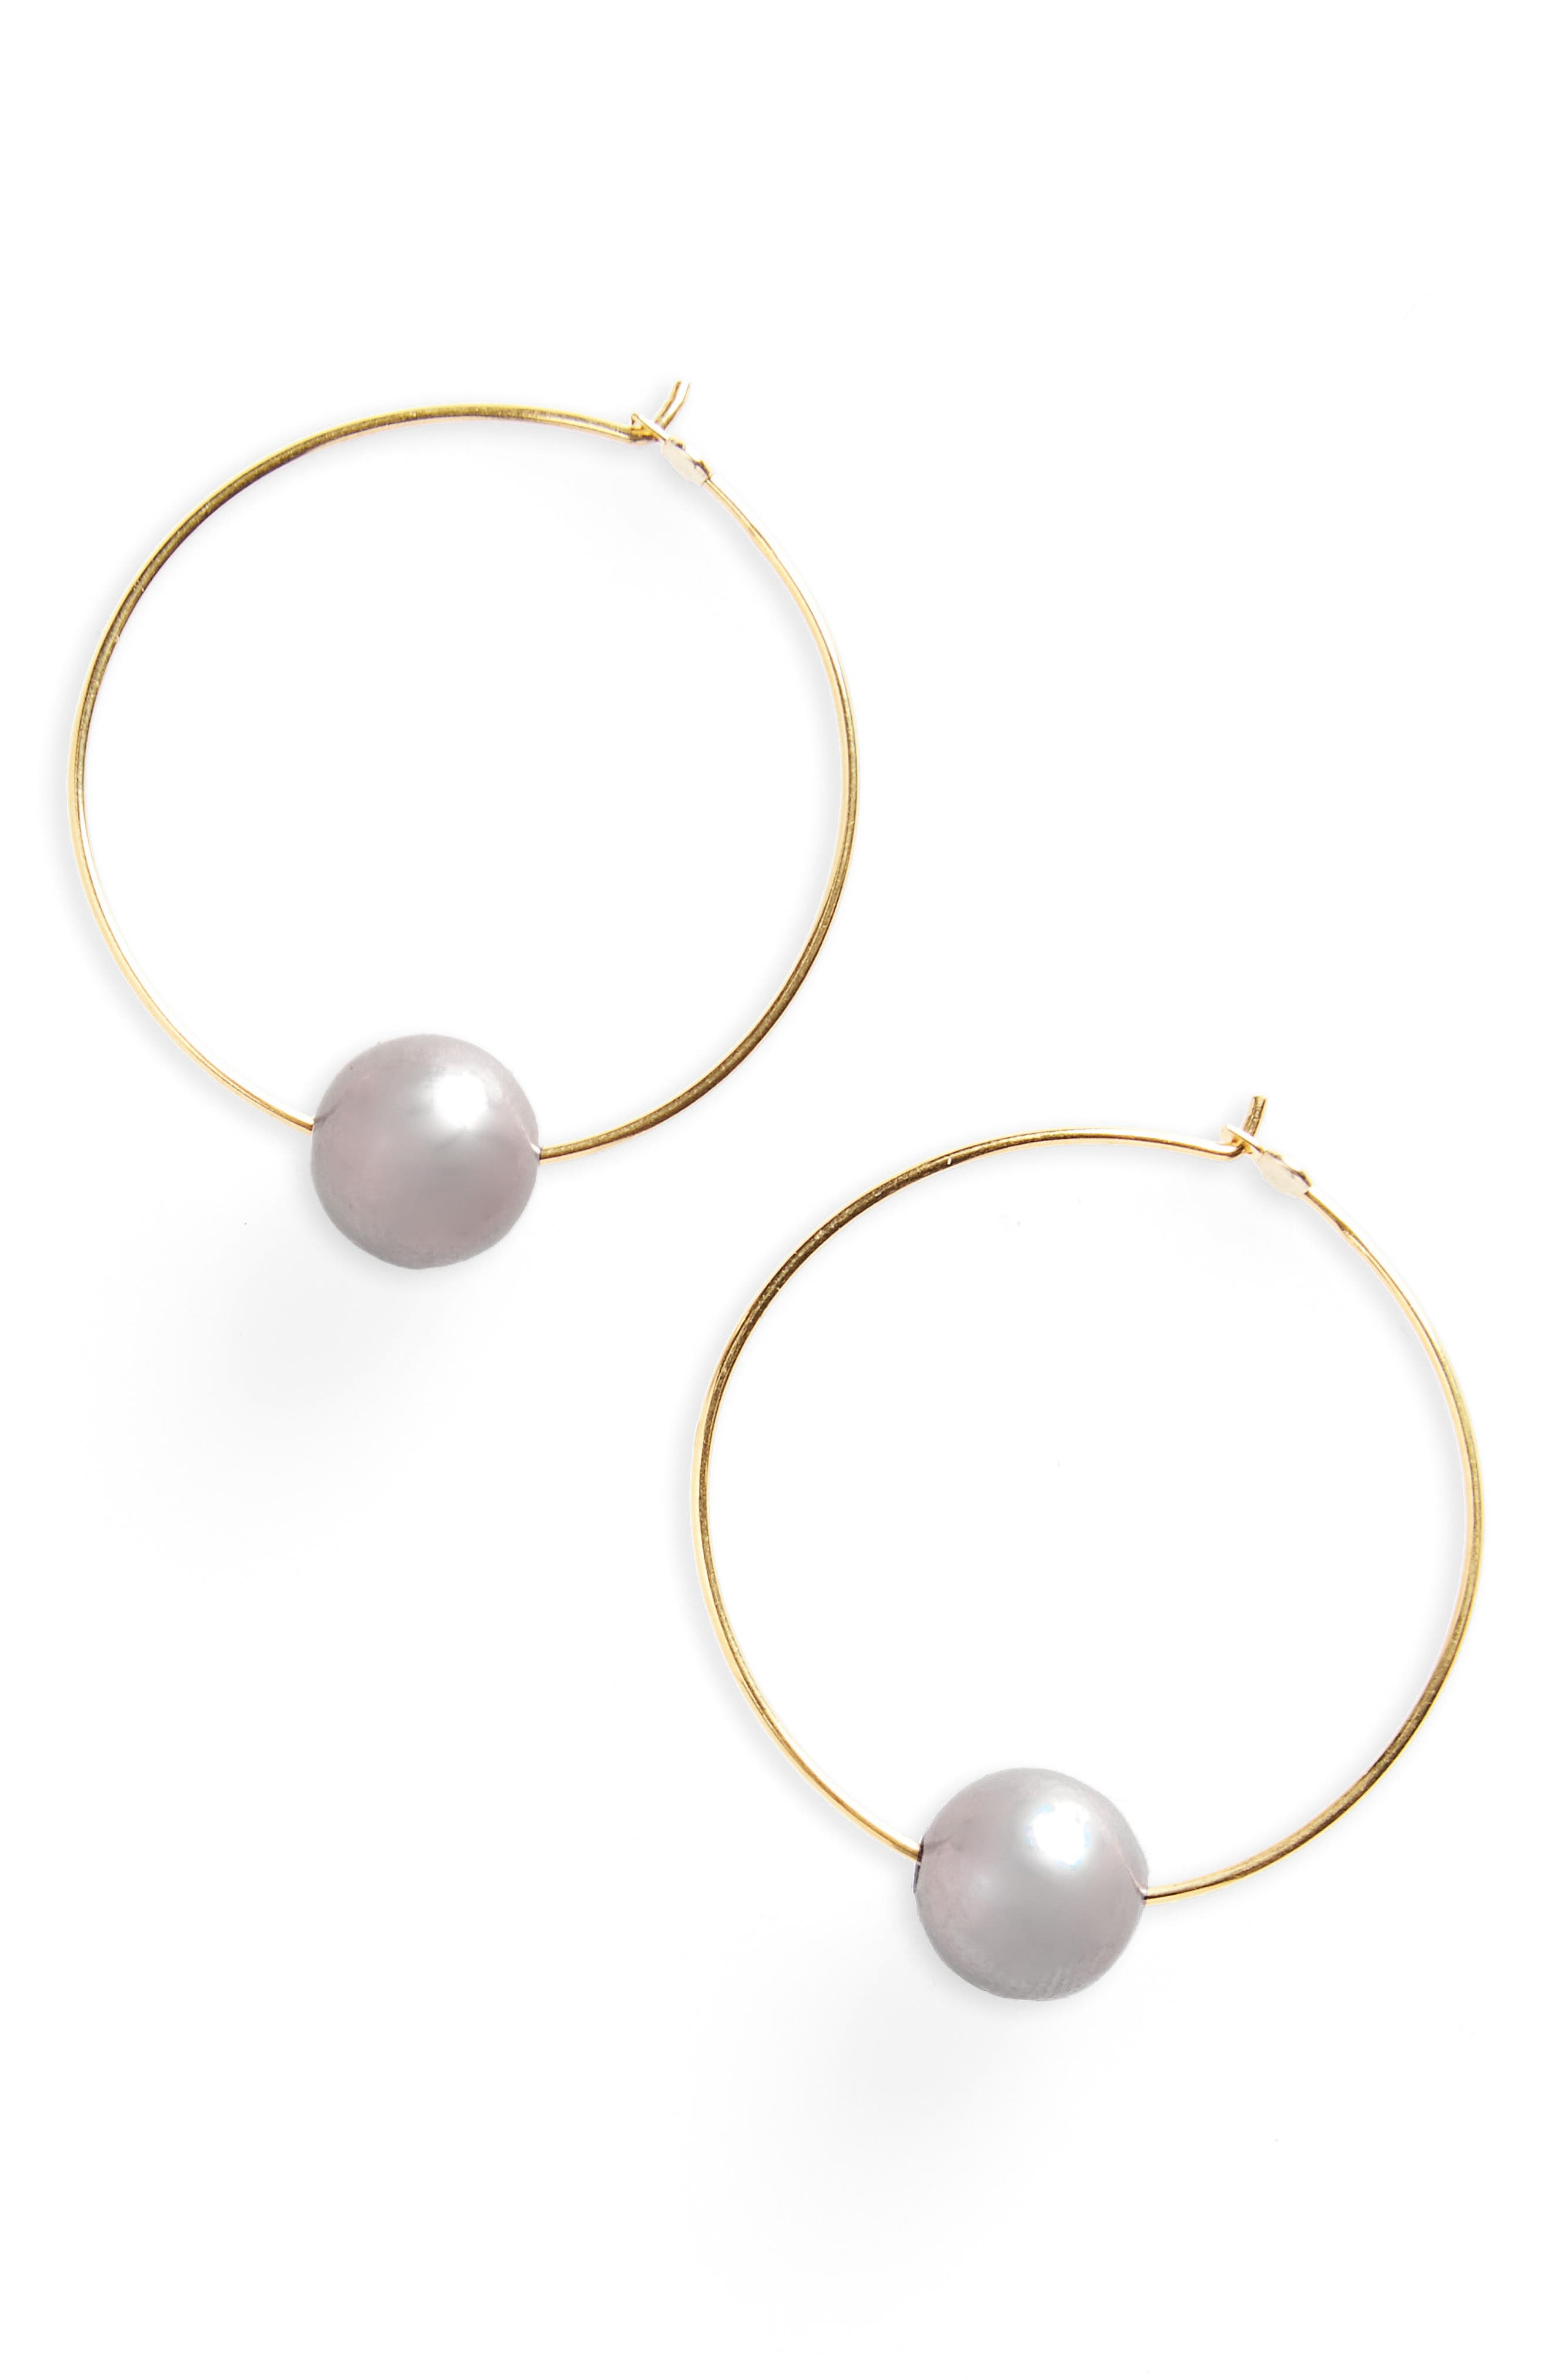 Main Image - Chan Luu Freshwater Pearl Hoop Earrings